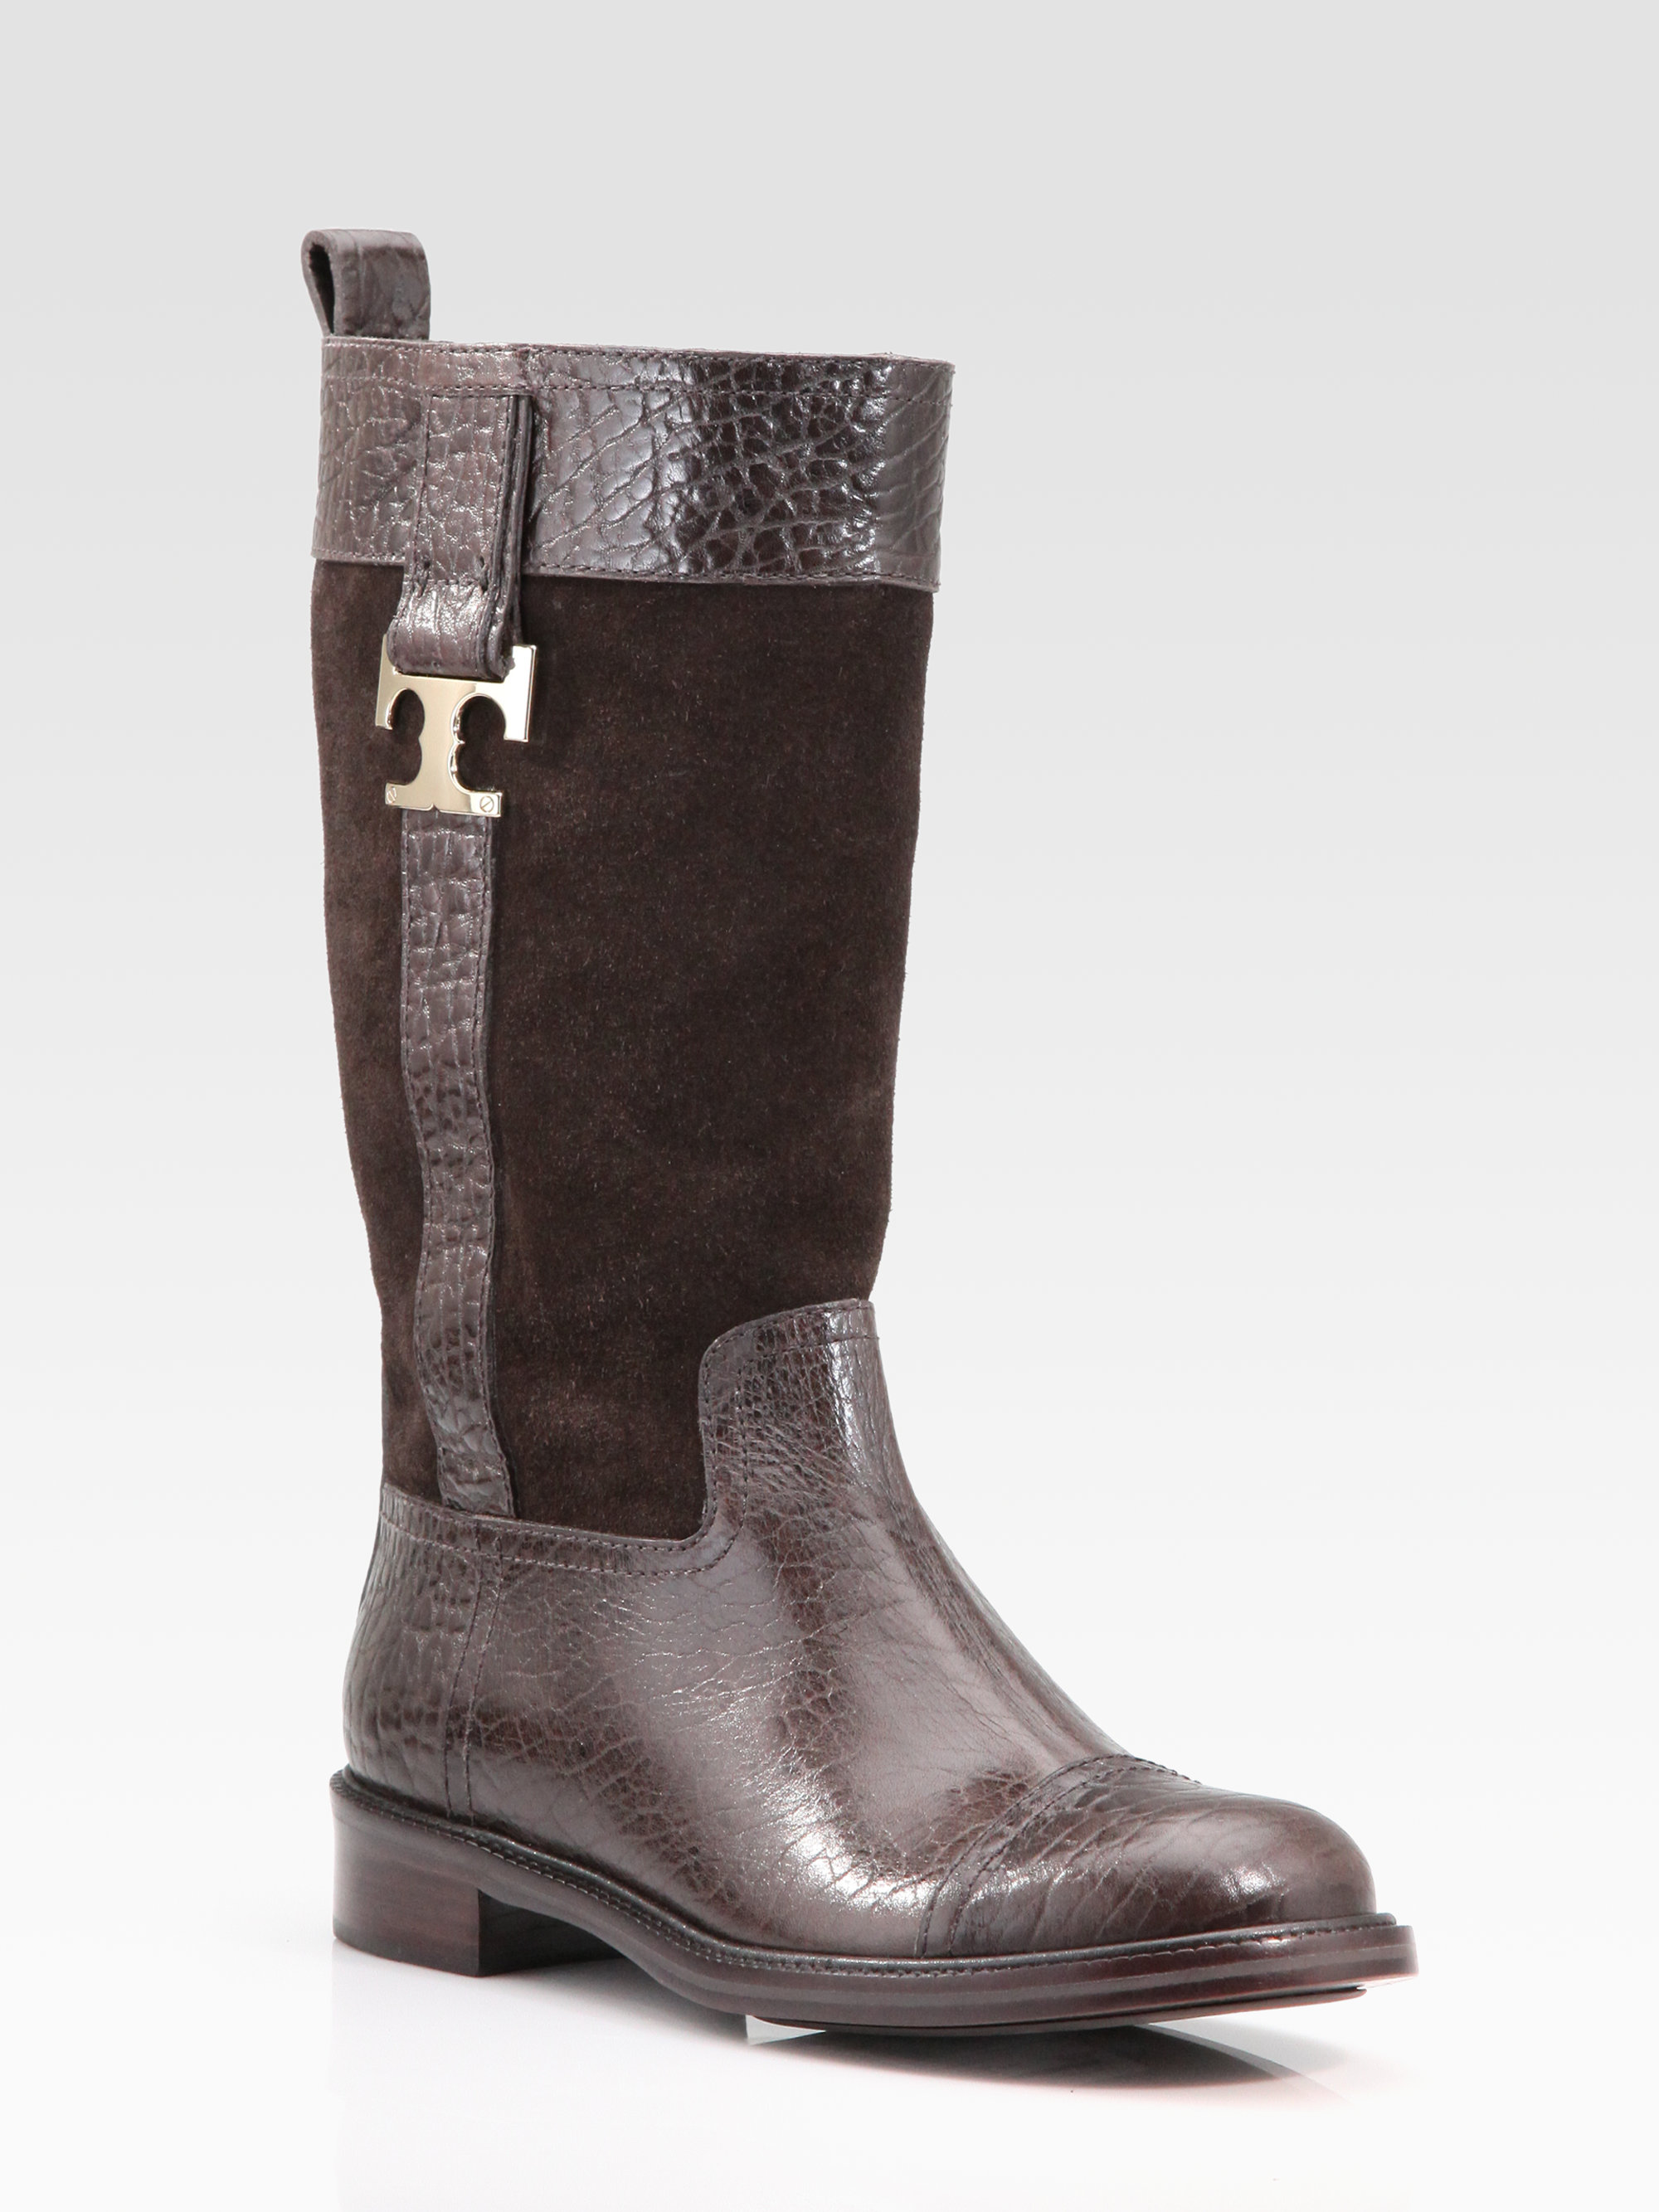 Tory Burch Suede Logo Mid-Calf Boots cheap recommend jbK2zcr